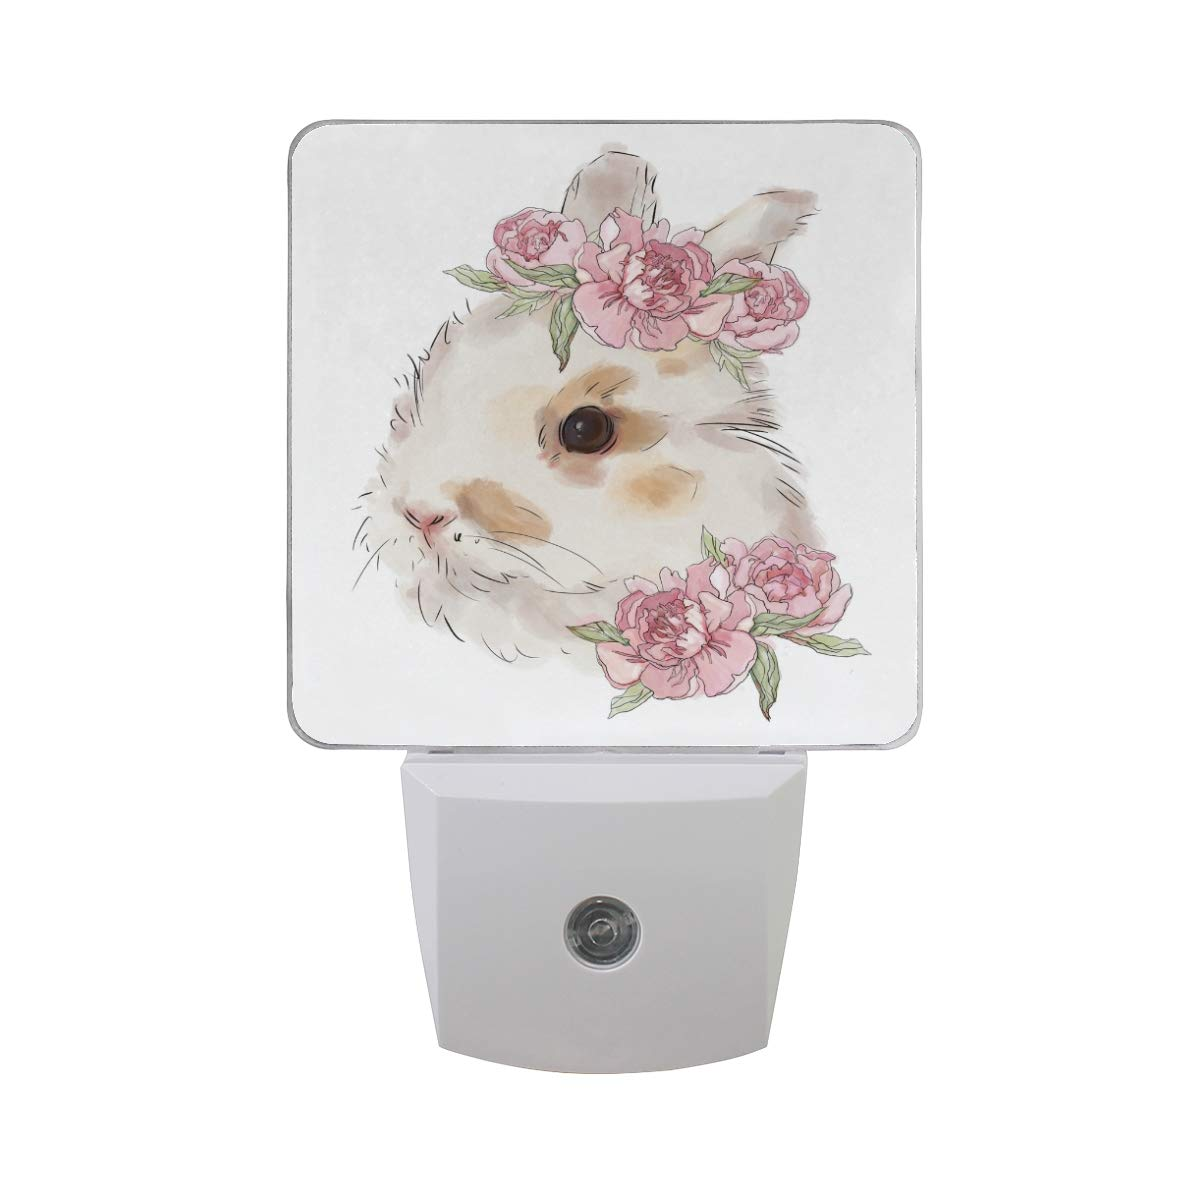 LED Night Light Rabbit with Pink Flowers Marvellous Auto Senor Dusk to Dawn Night Light Decorative Plug in for Kids Baby Girls Boys Adults Room Set of 2